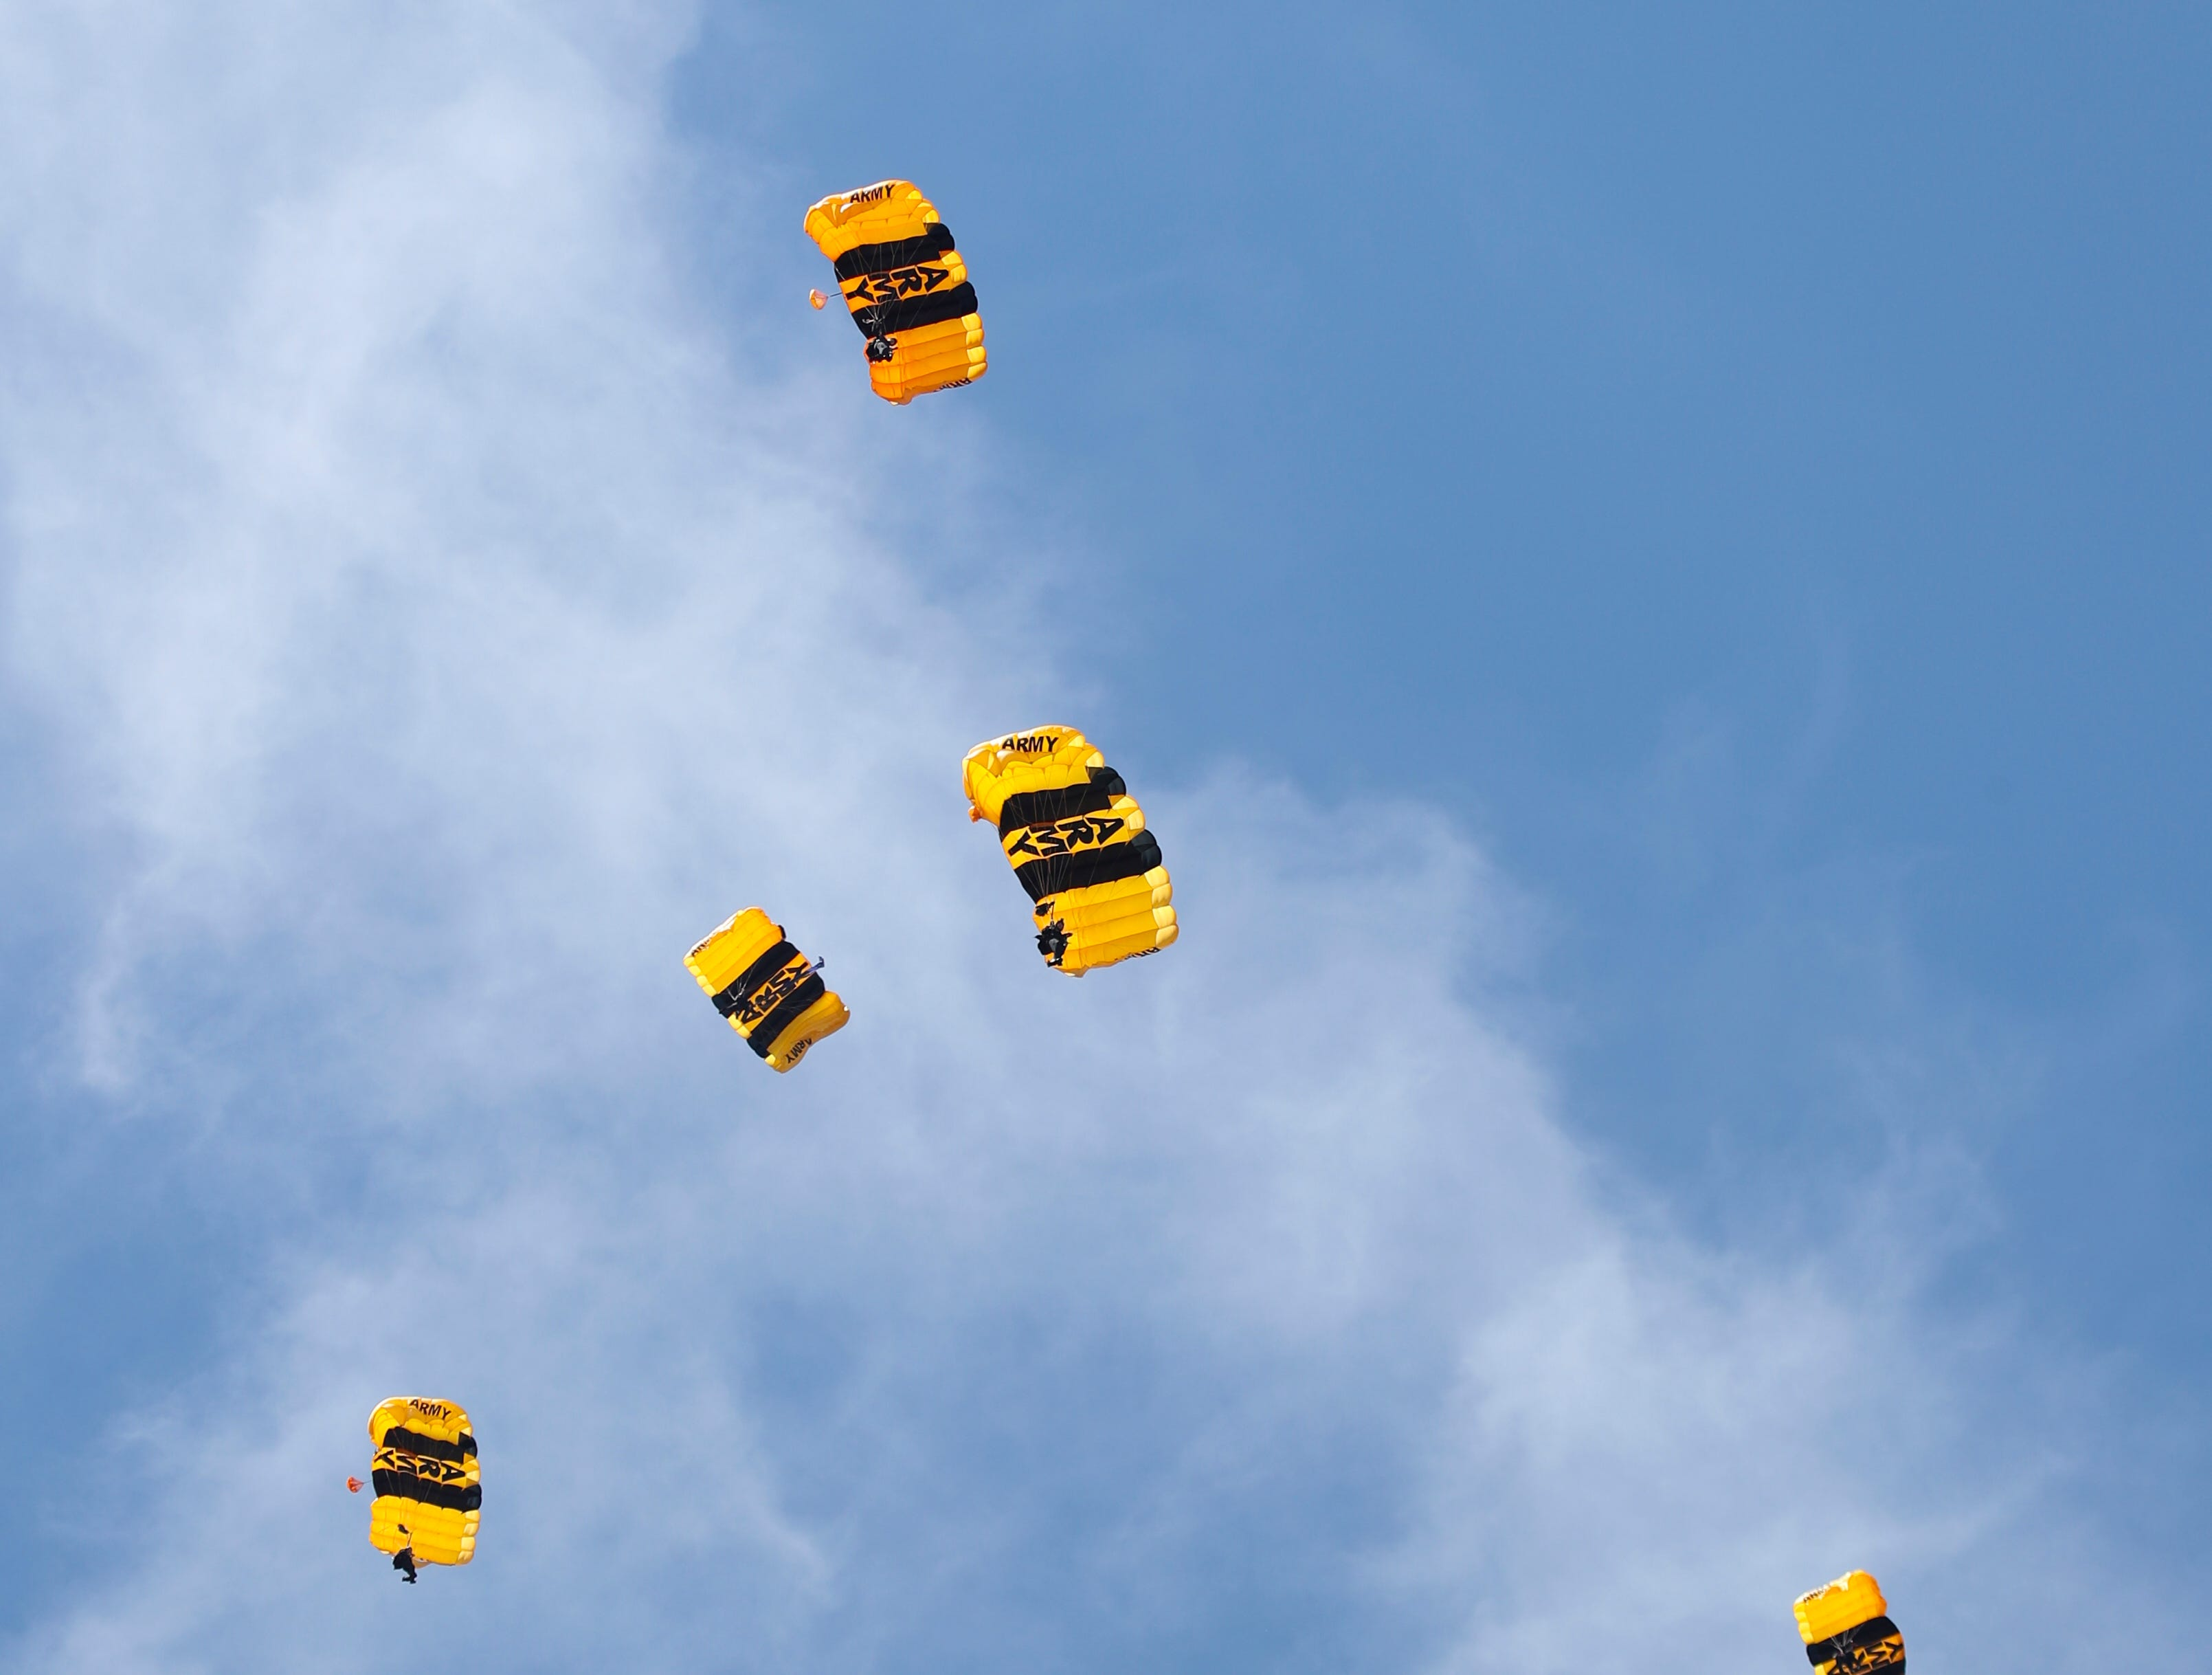 The U.S. Army Golden Knights entertains the crowd at Thunder Over Louisville on April 13.